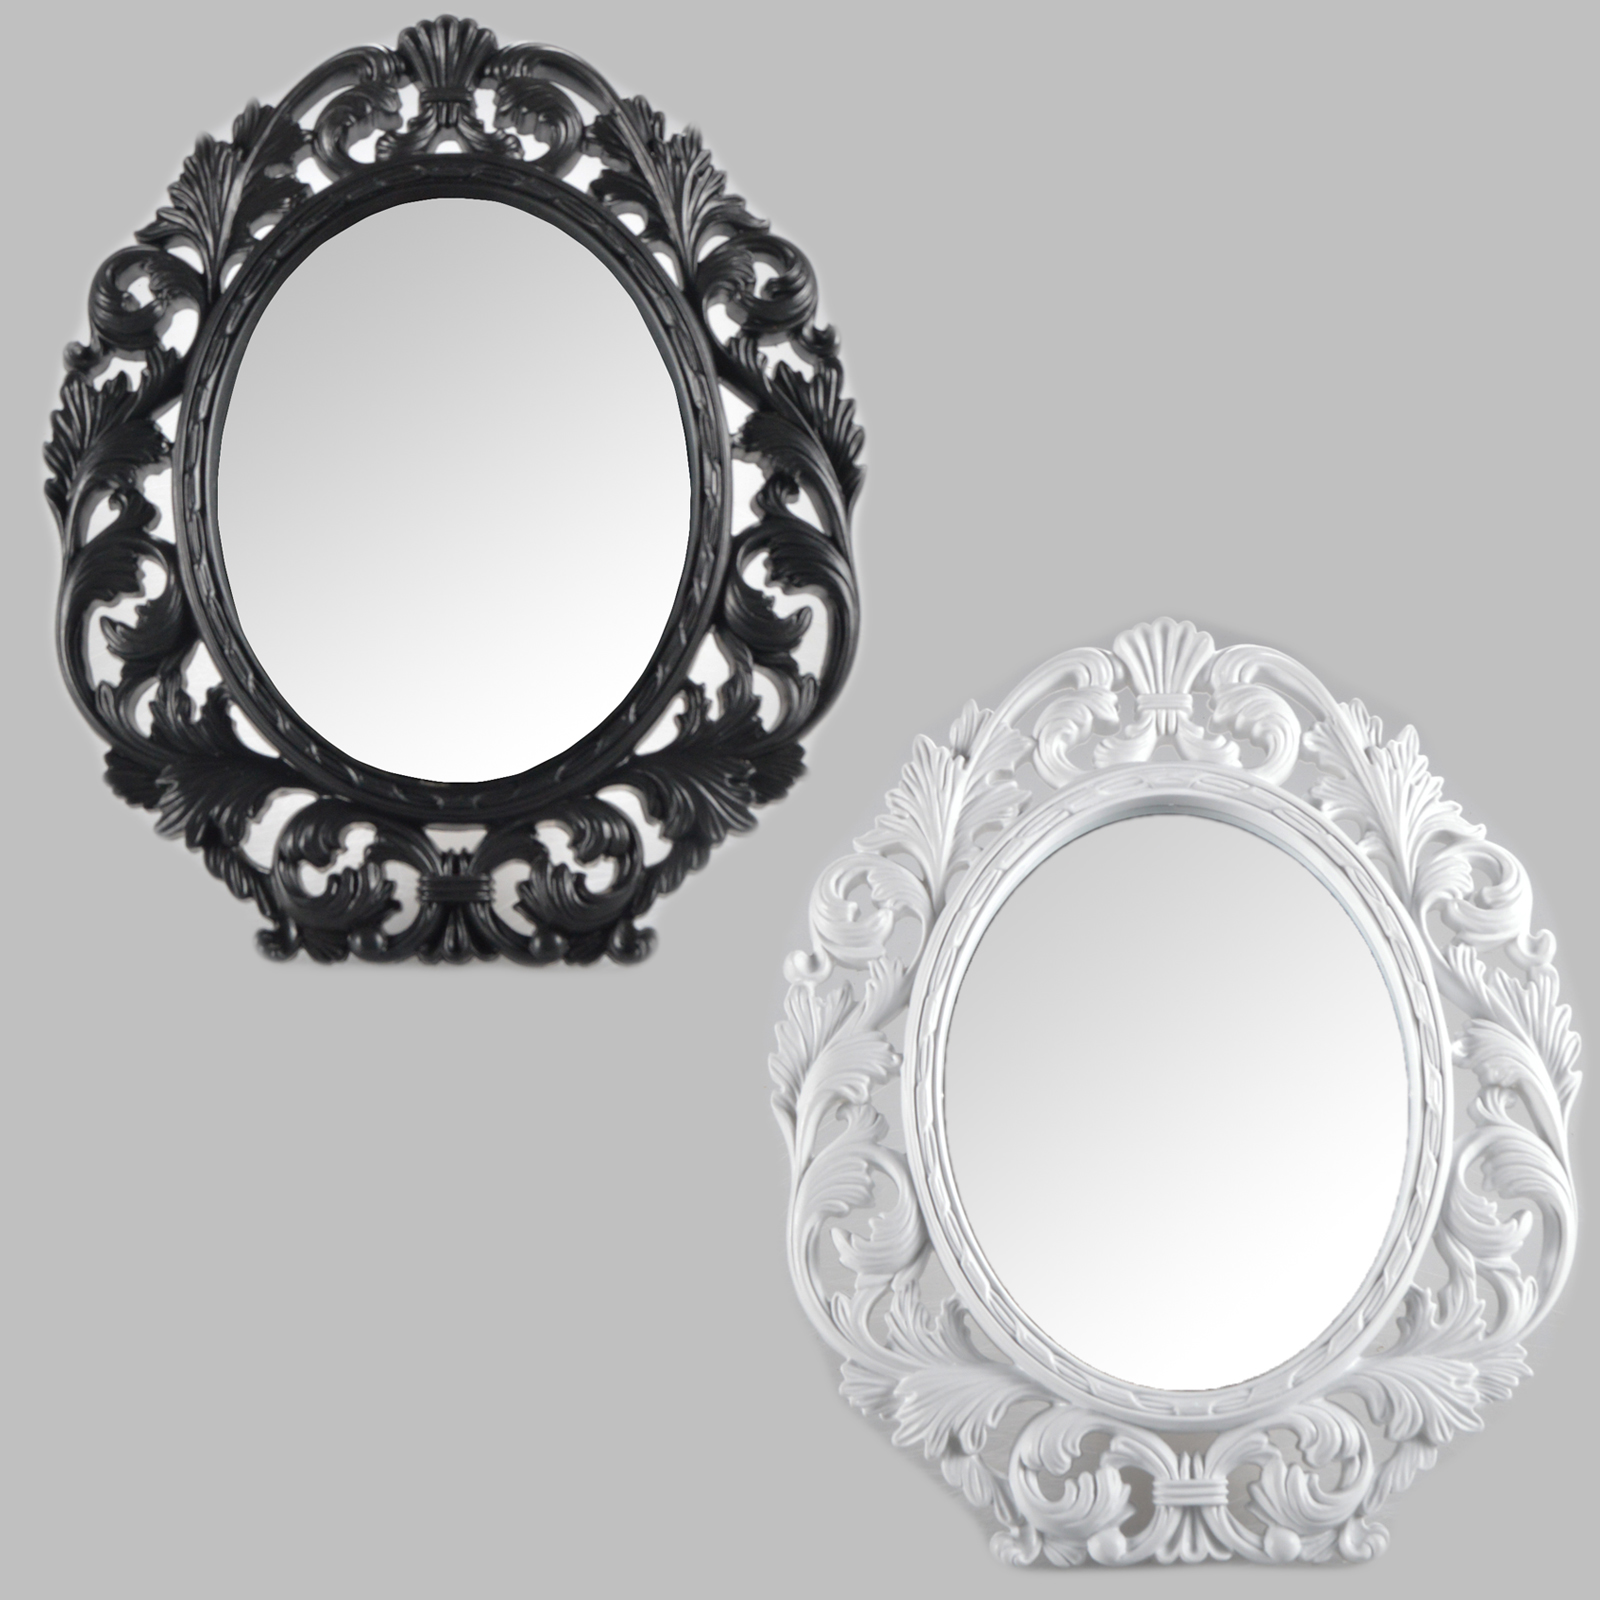 Table mirror cosmetic standing wall black white antique for Plastic baroque mirror